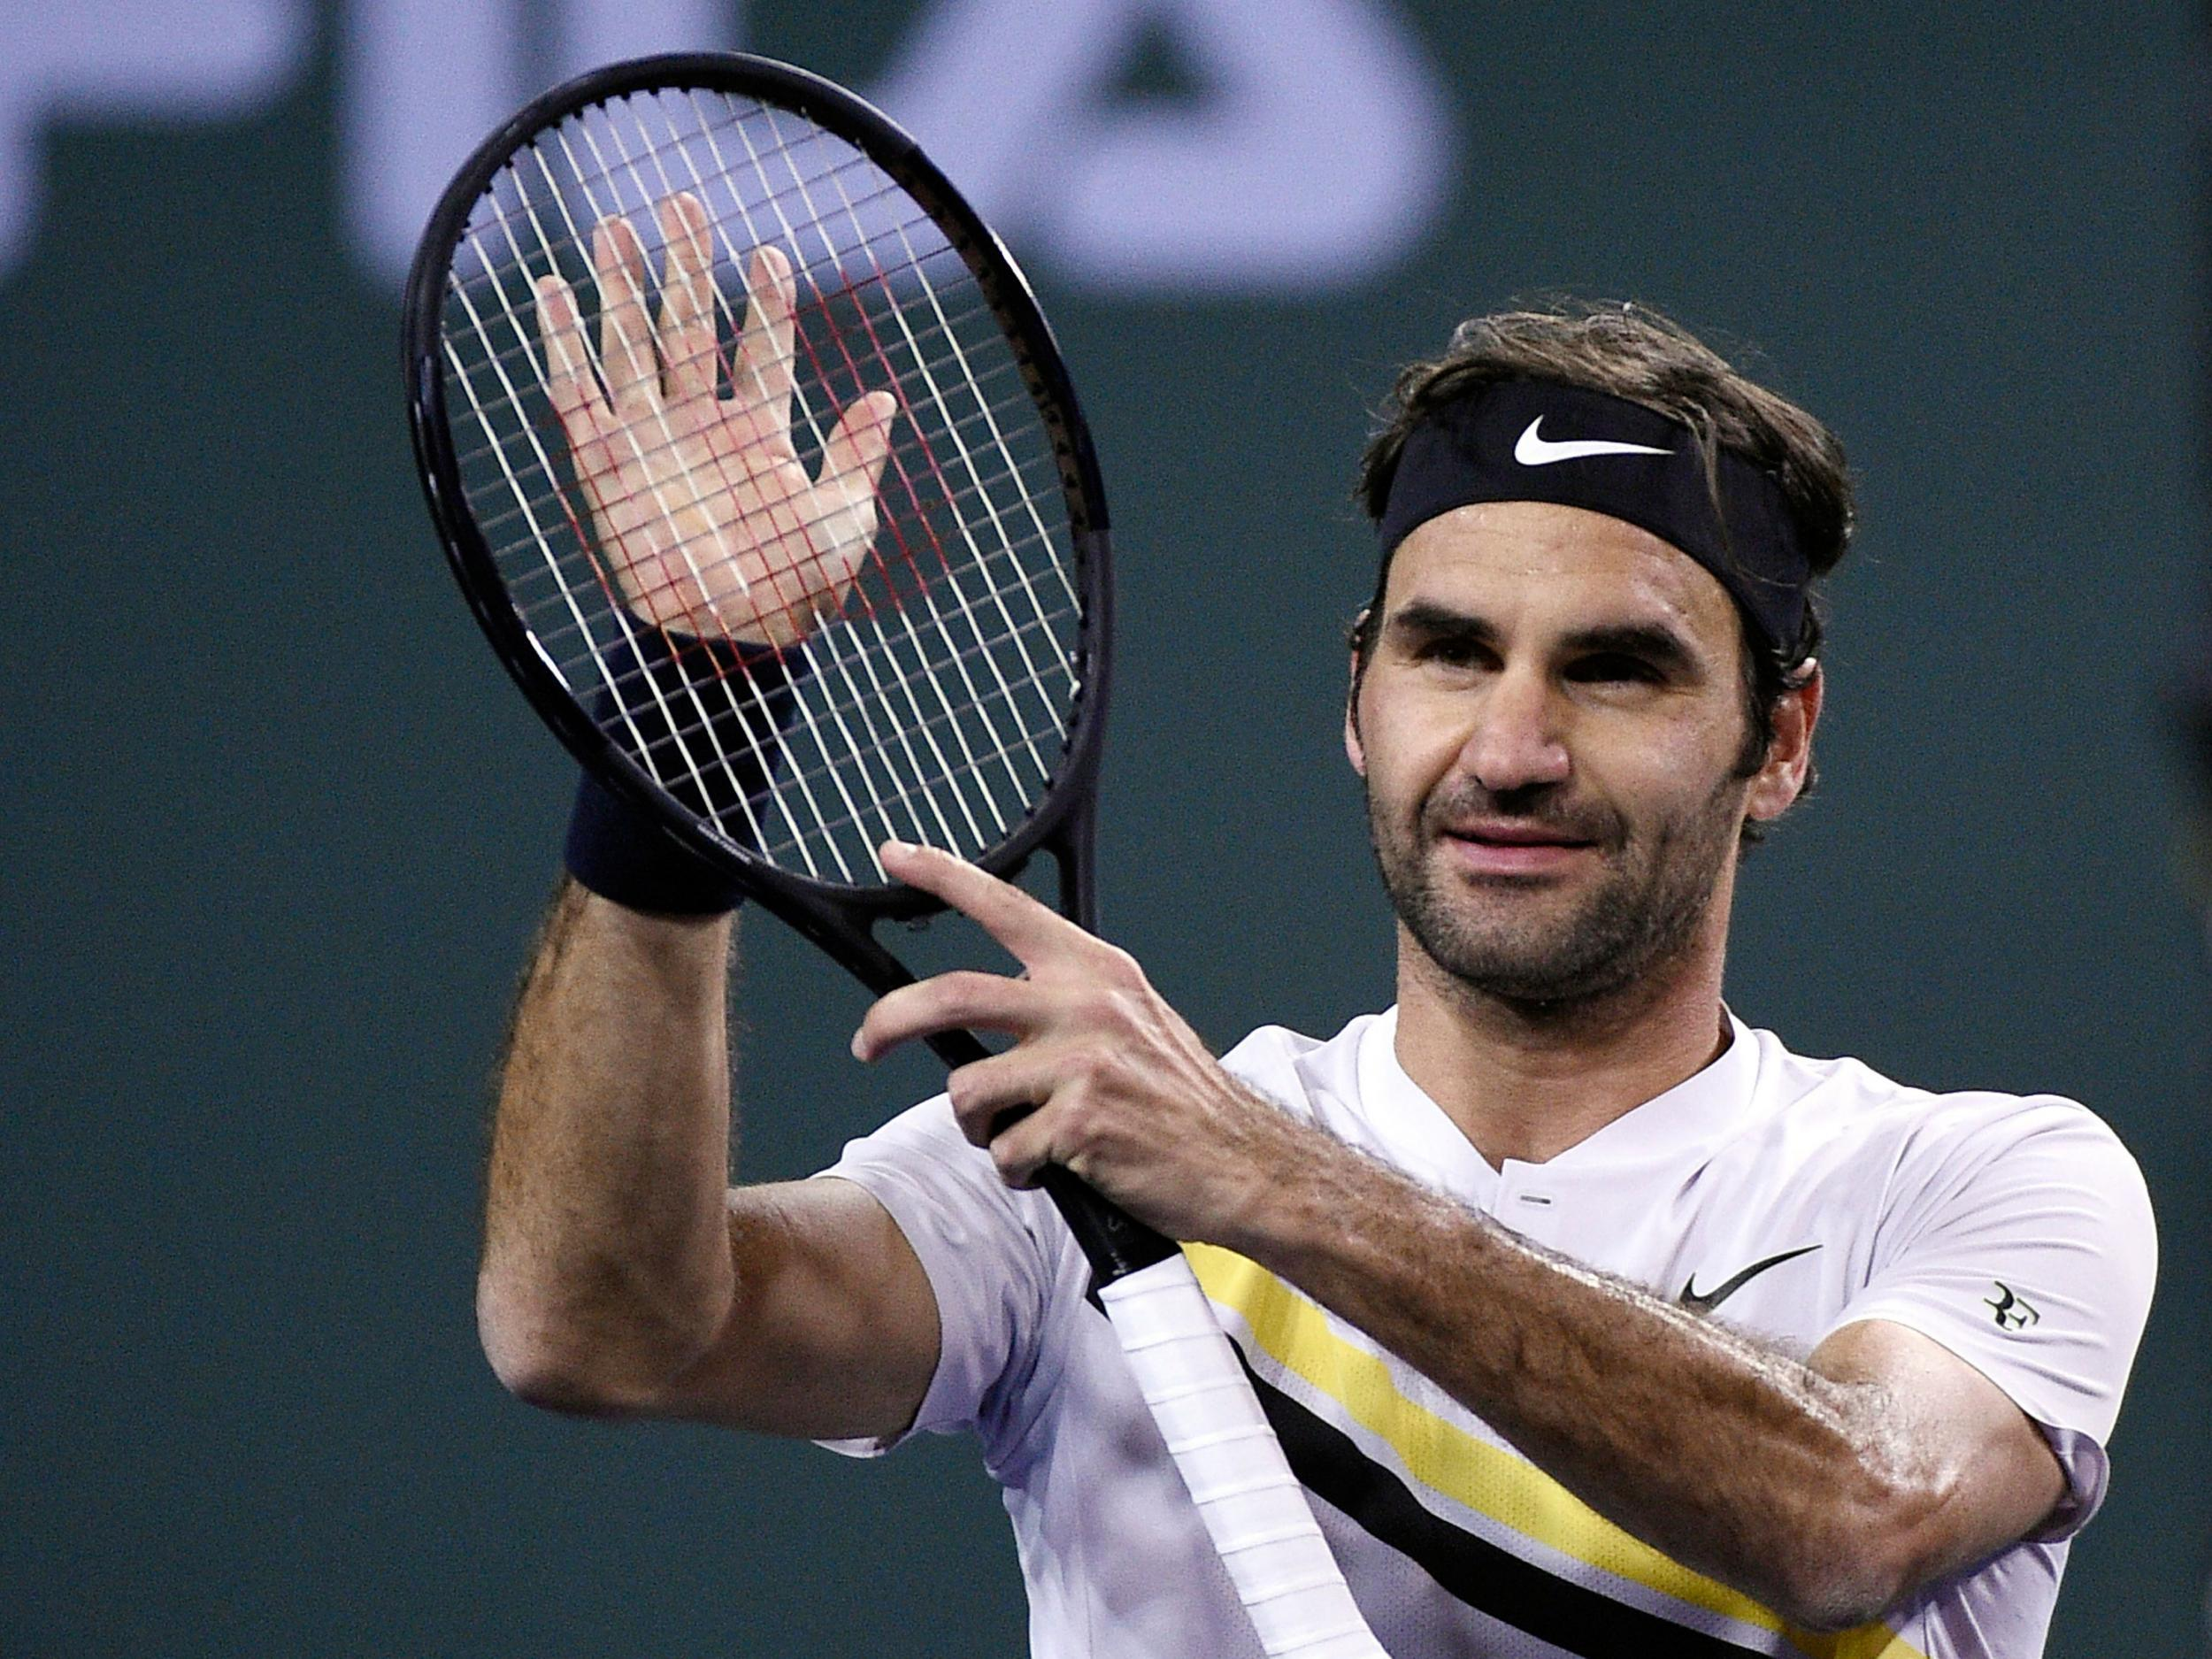 Roger federer into 11th indian wells semi final with win over hyeon roger federer into 11th indian wells semi final with win over hyeon chung the independent voltagebd Image collections